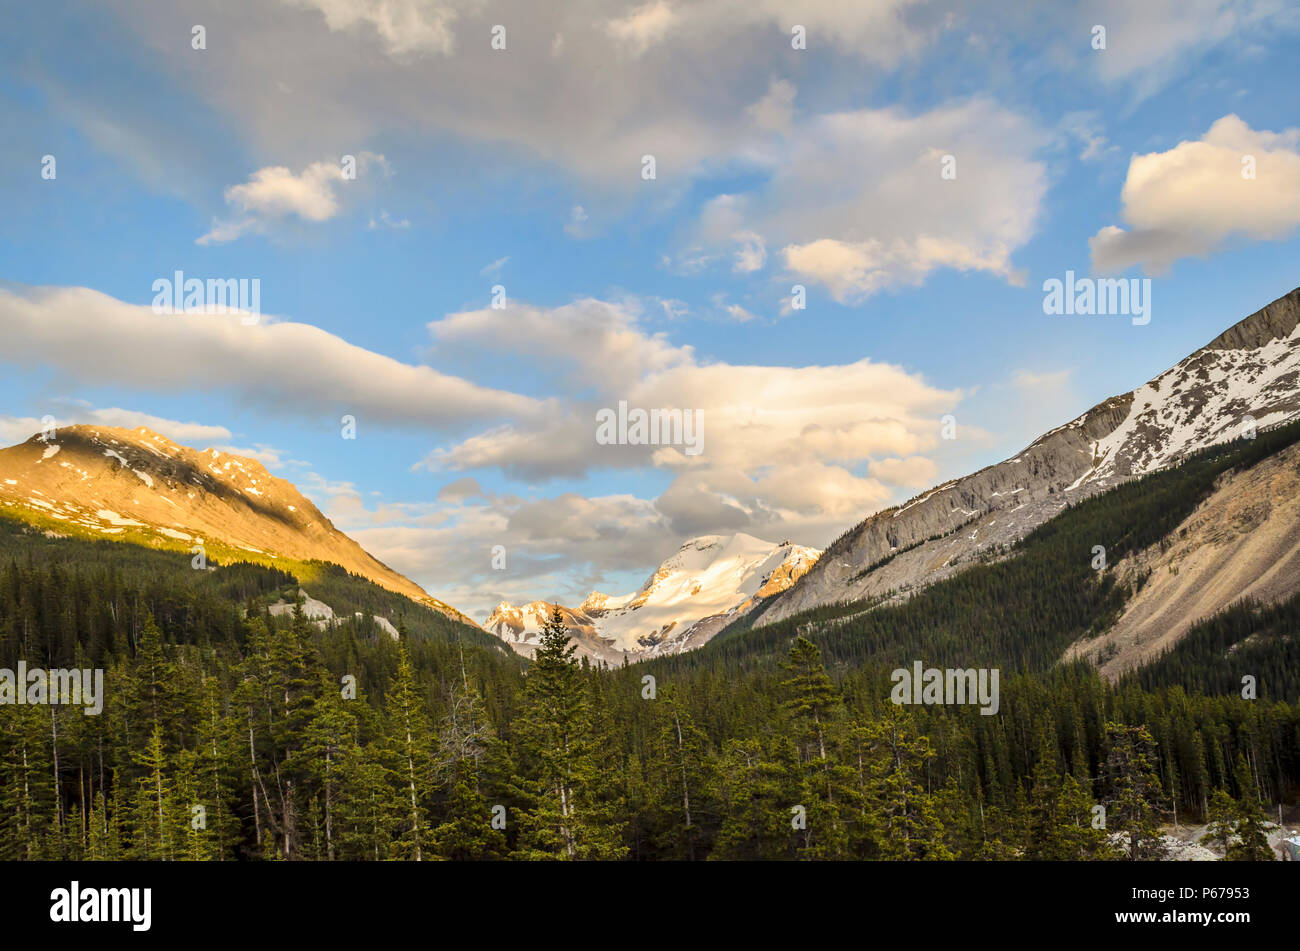 dense coniferous forest, high mountains covered with snow, blue sky and fluffy clouds illuminated by sunlight - Stock Image